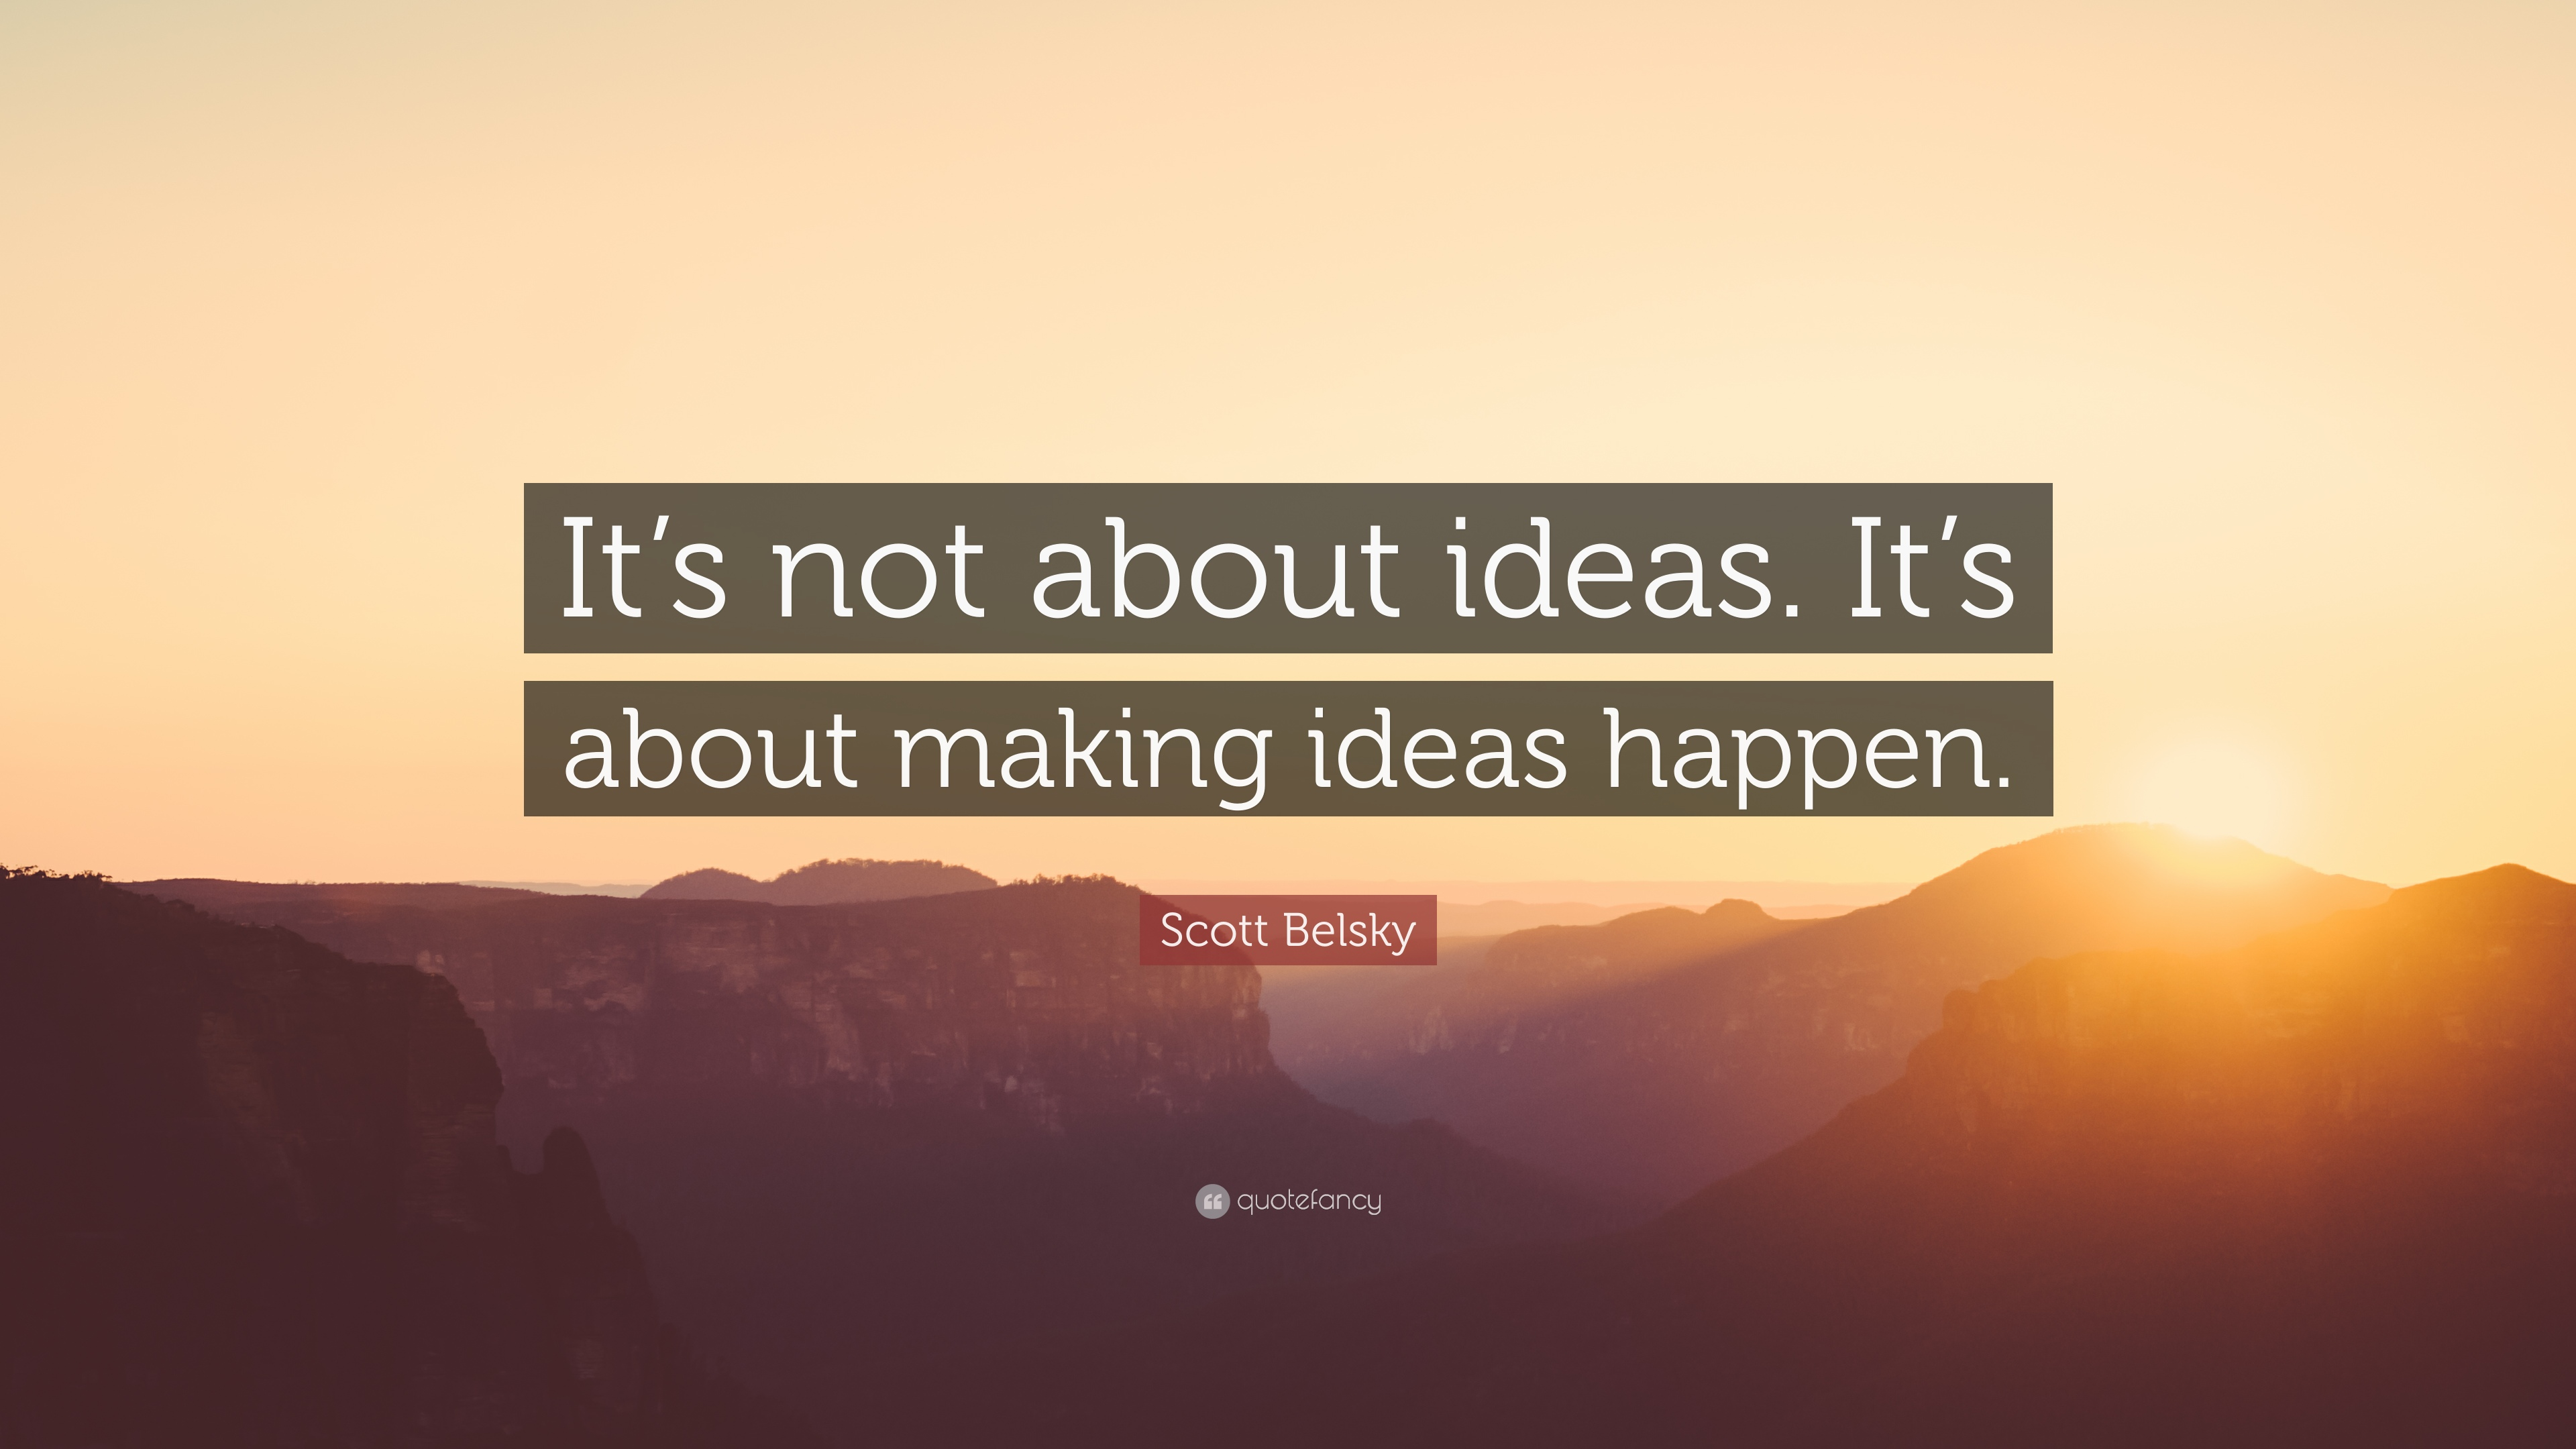 scott belsky quote it s not about ideas it s about making ideas